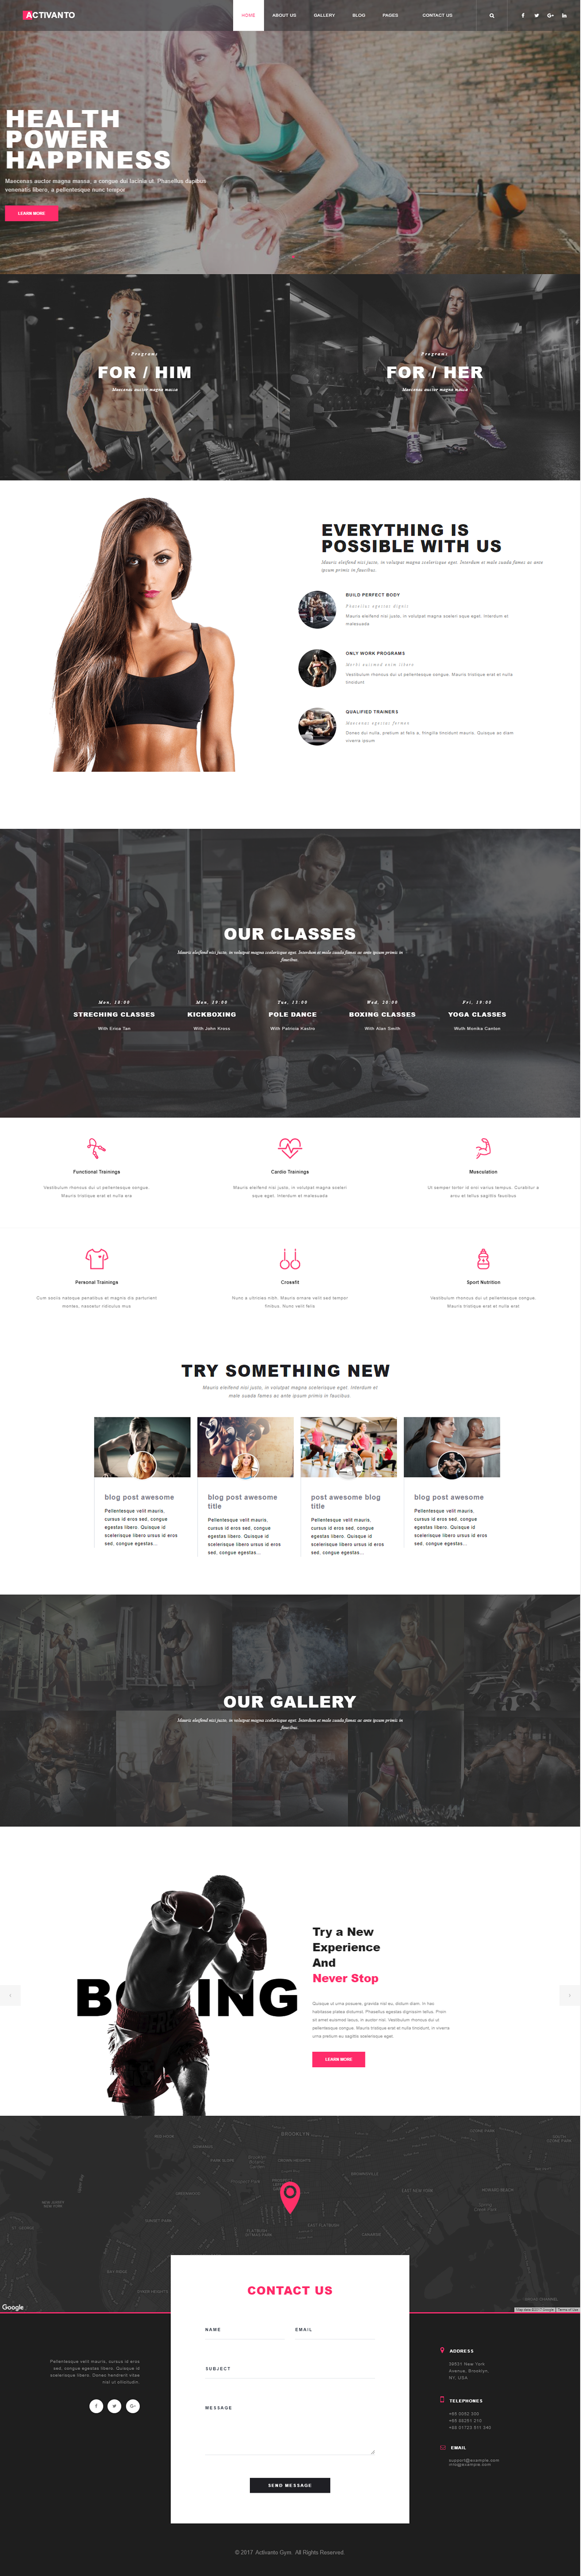 Activanto - Gym & Fitness WordPress Theme